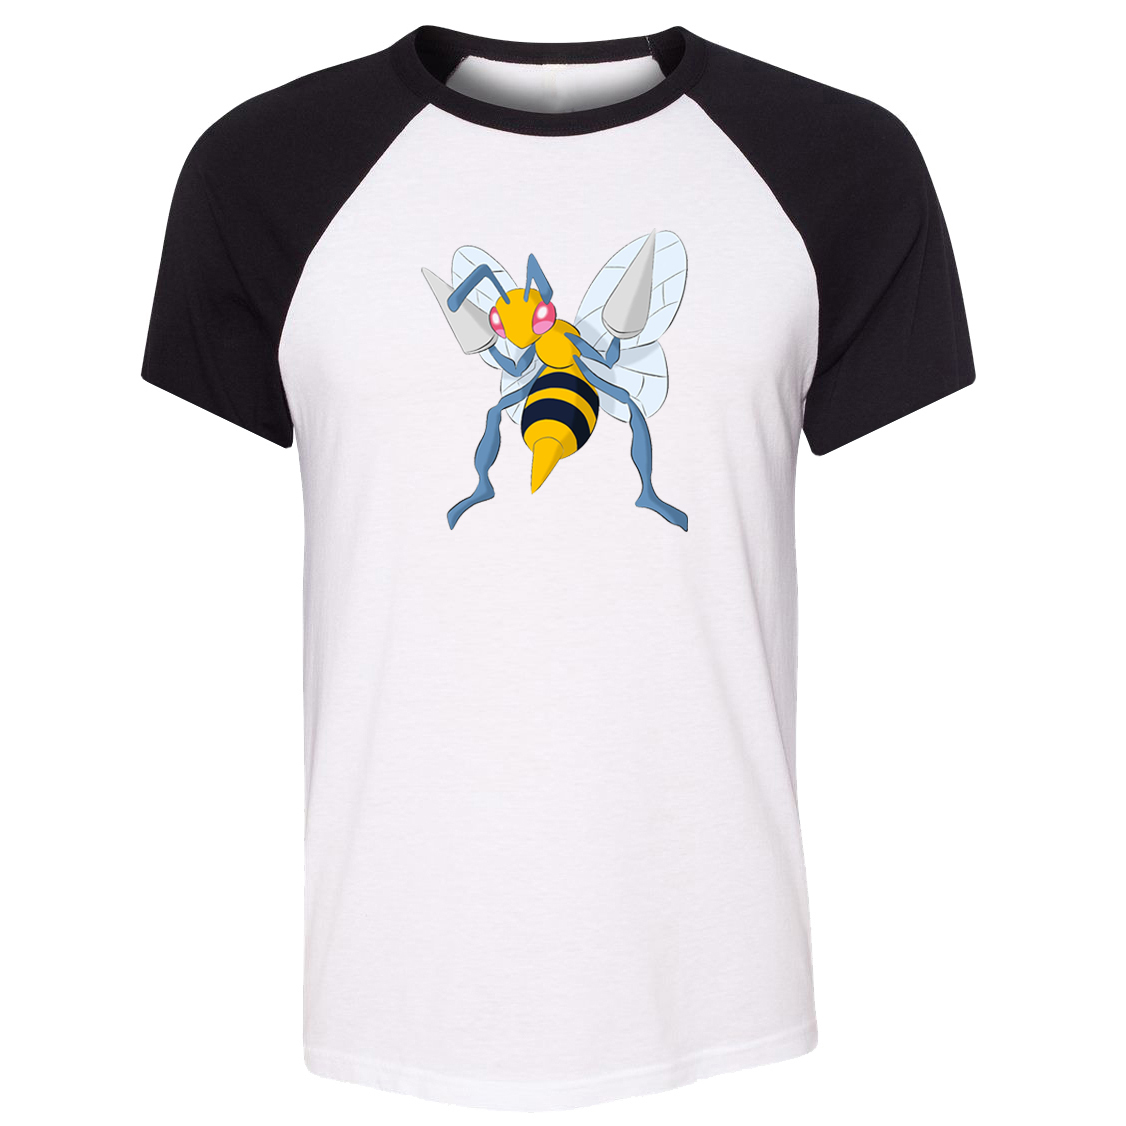 iDzn Unisex Summer T-shirt Cartoon Poison type Bug type Pokemon Beedrill Pattern Raglan Short Sleeve Men T shirt print Tee Tops image